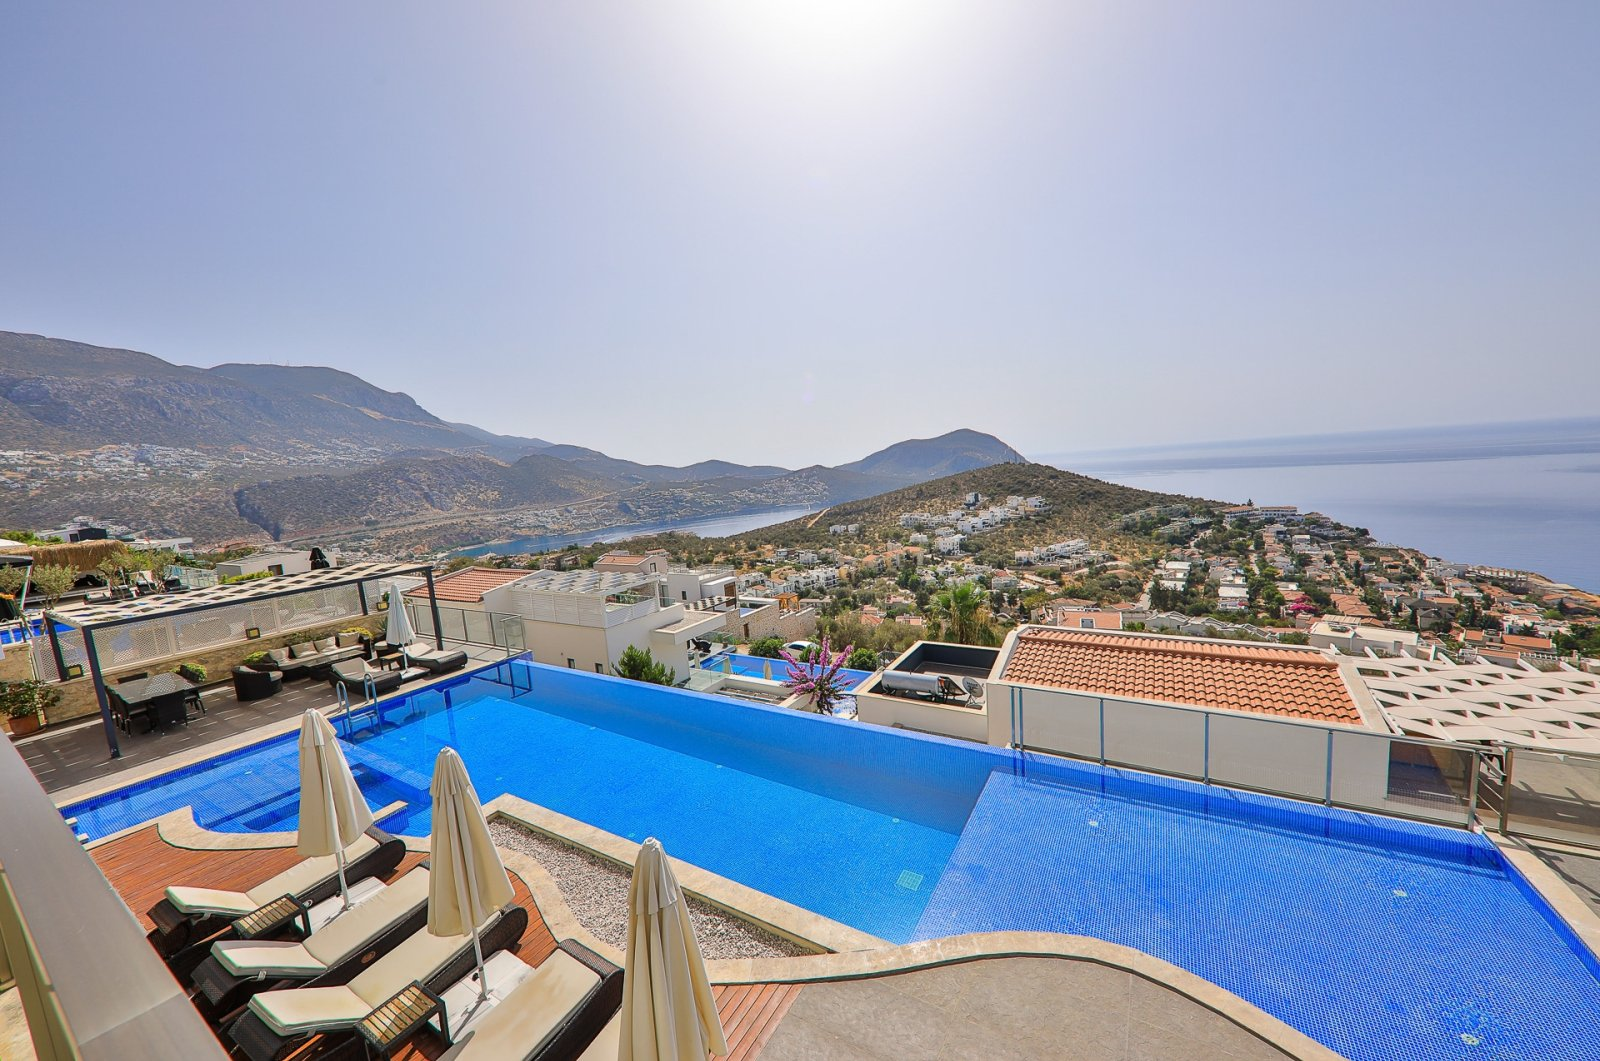 Villas on lease for a socially distant vacation are a hit in Turkey's Antalya. (DHA Photo)